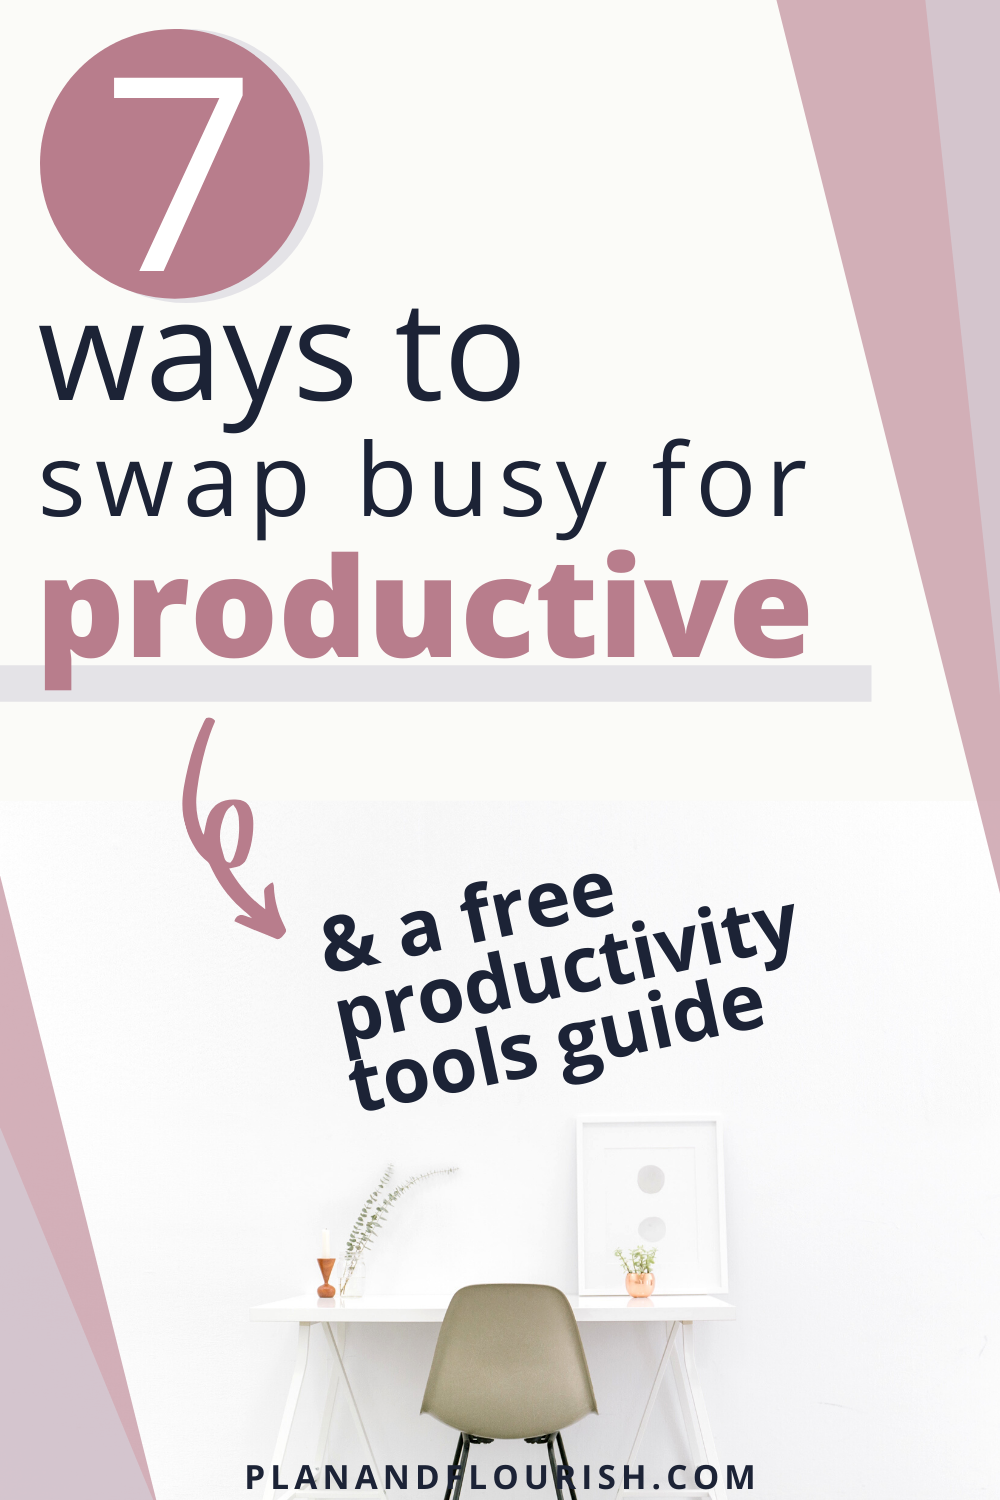 7 Ways To Swap Busy For Productive